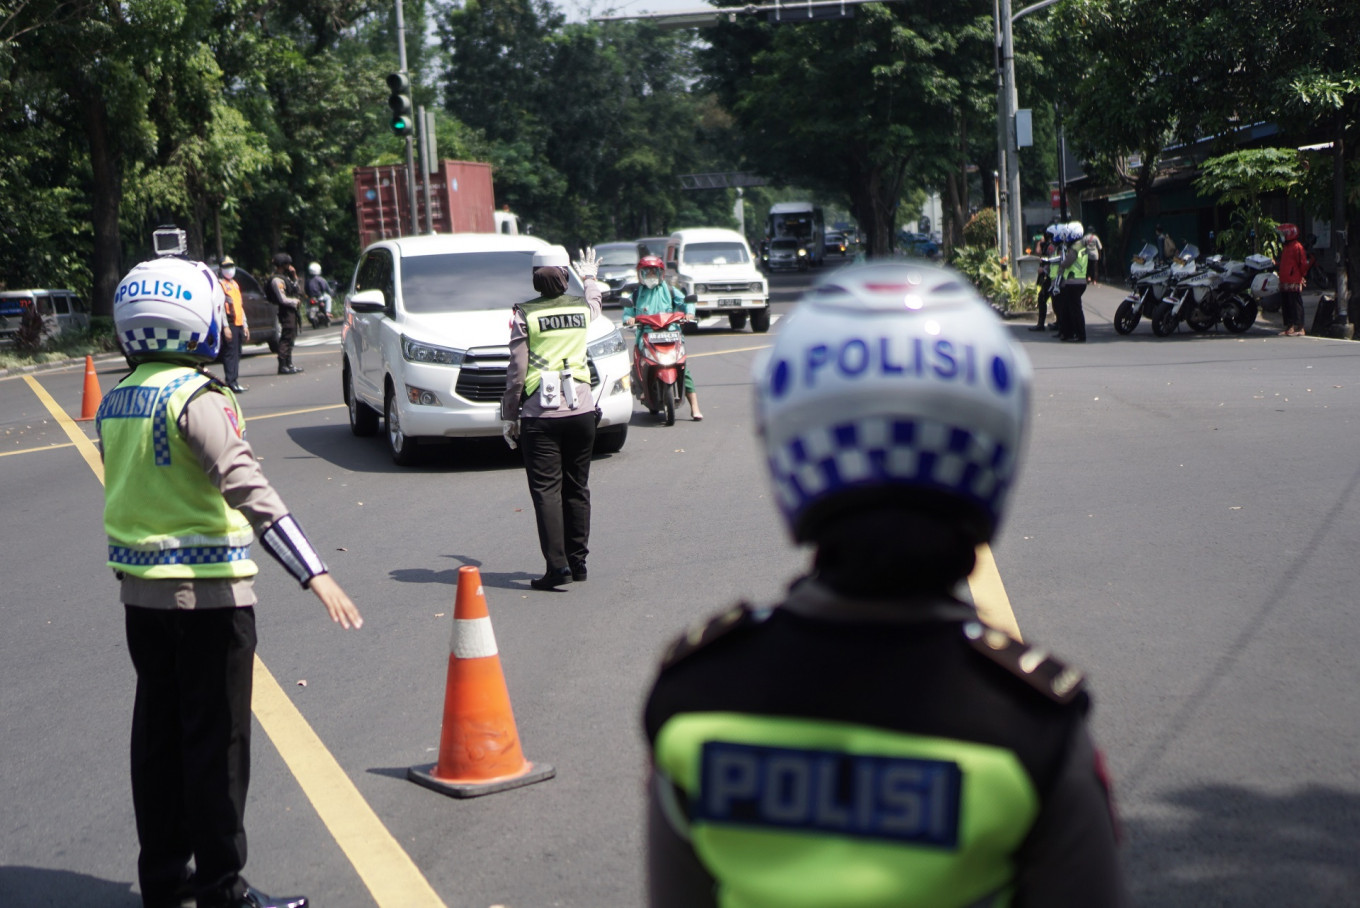 Concerns grow over Sumatra's surging COVID-19 cases